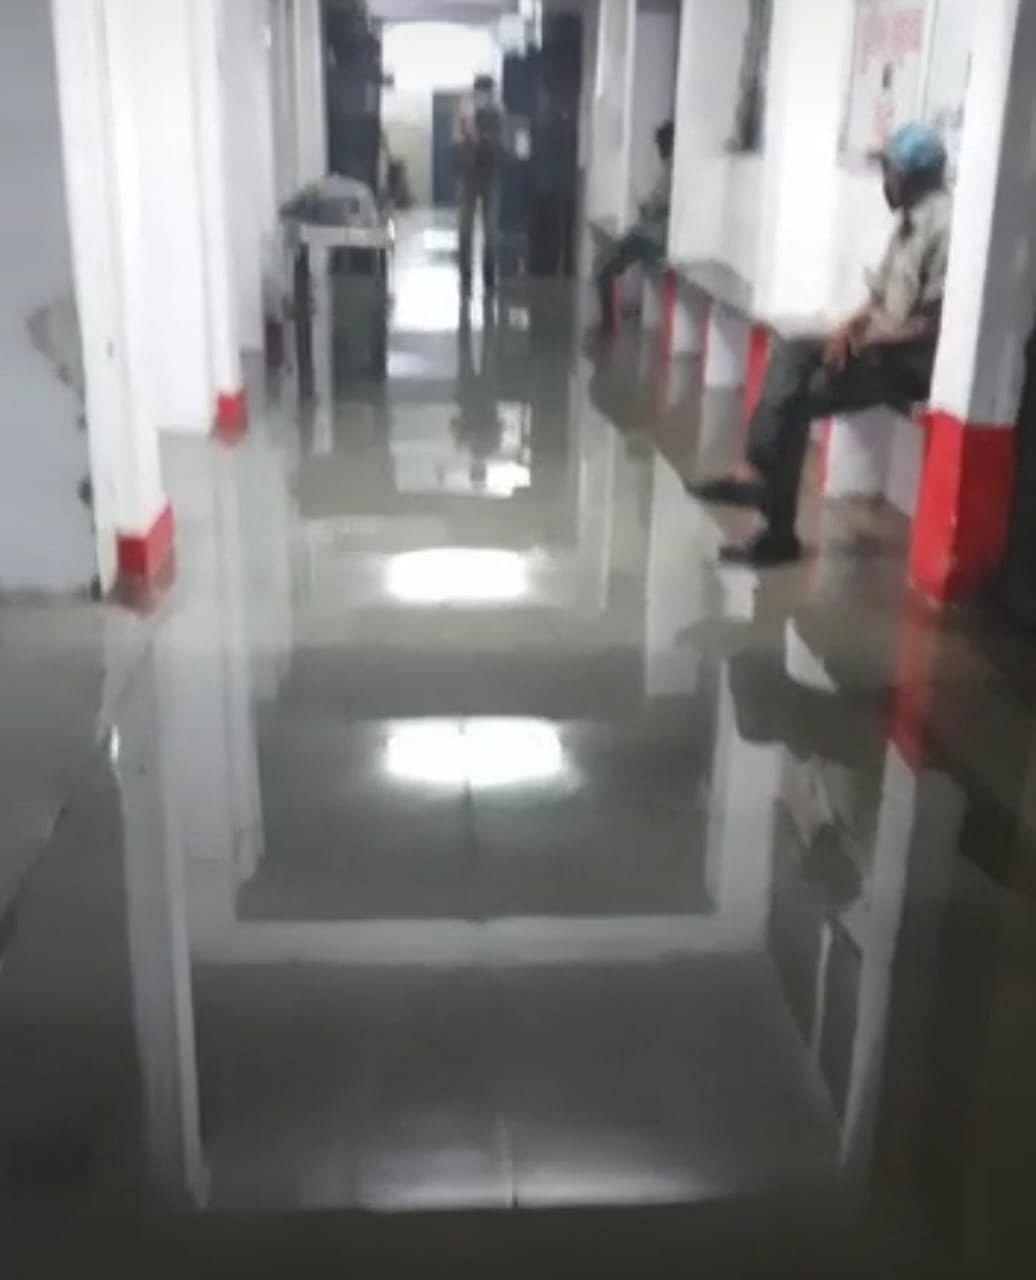 Ratlam: District hospital flooded with rainwater and sewage as panic grips visitors